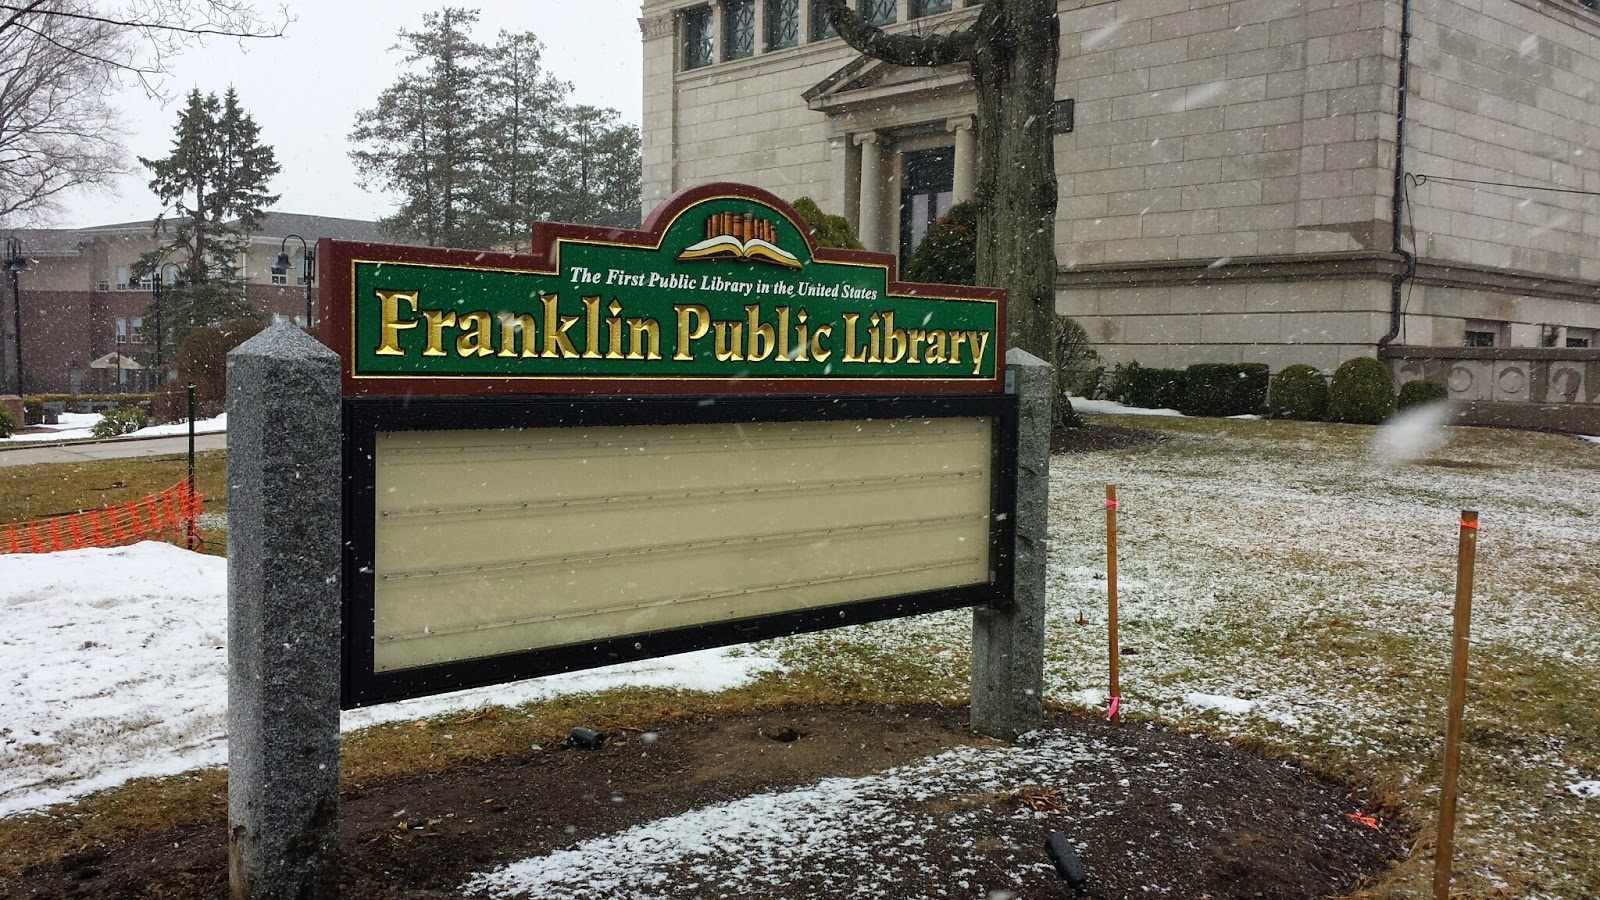 sign replaced (finally) at the Library